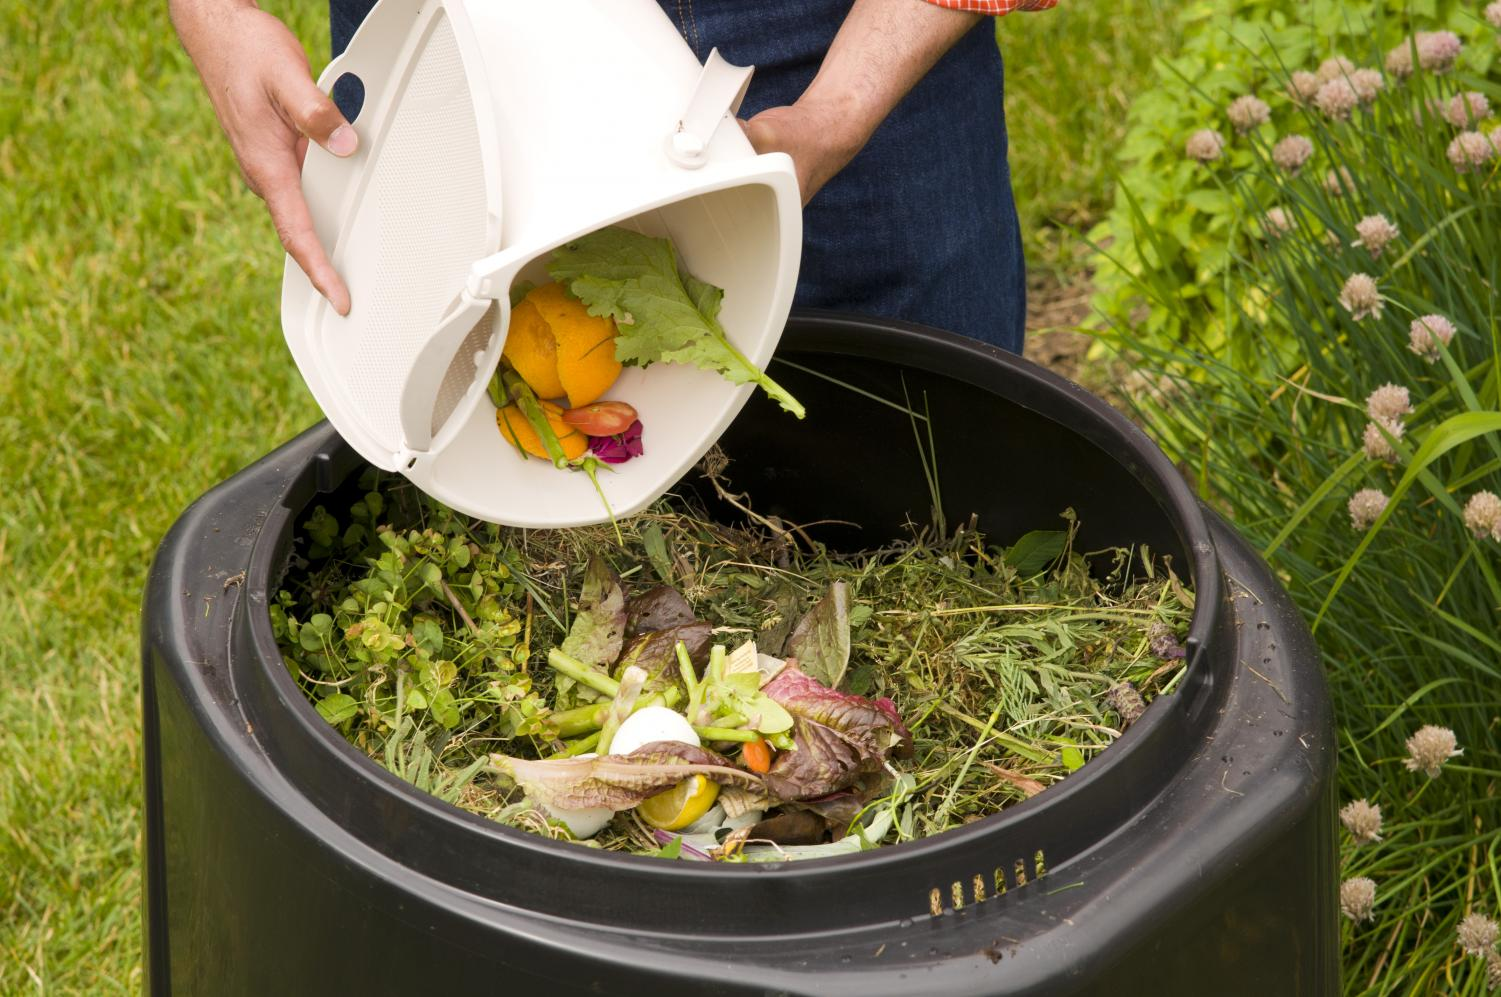 Composting food scraps may be one answer to our landfill problems